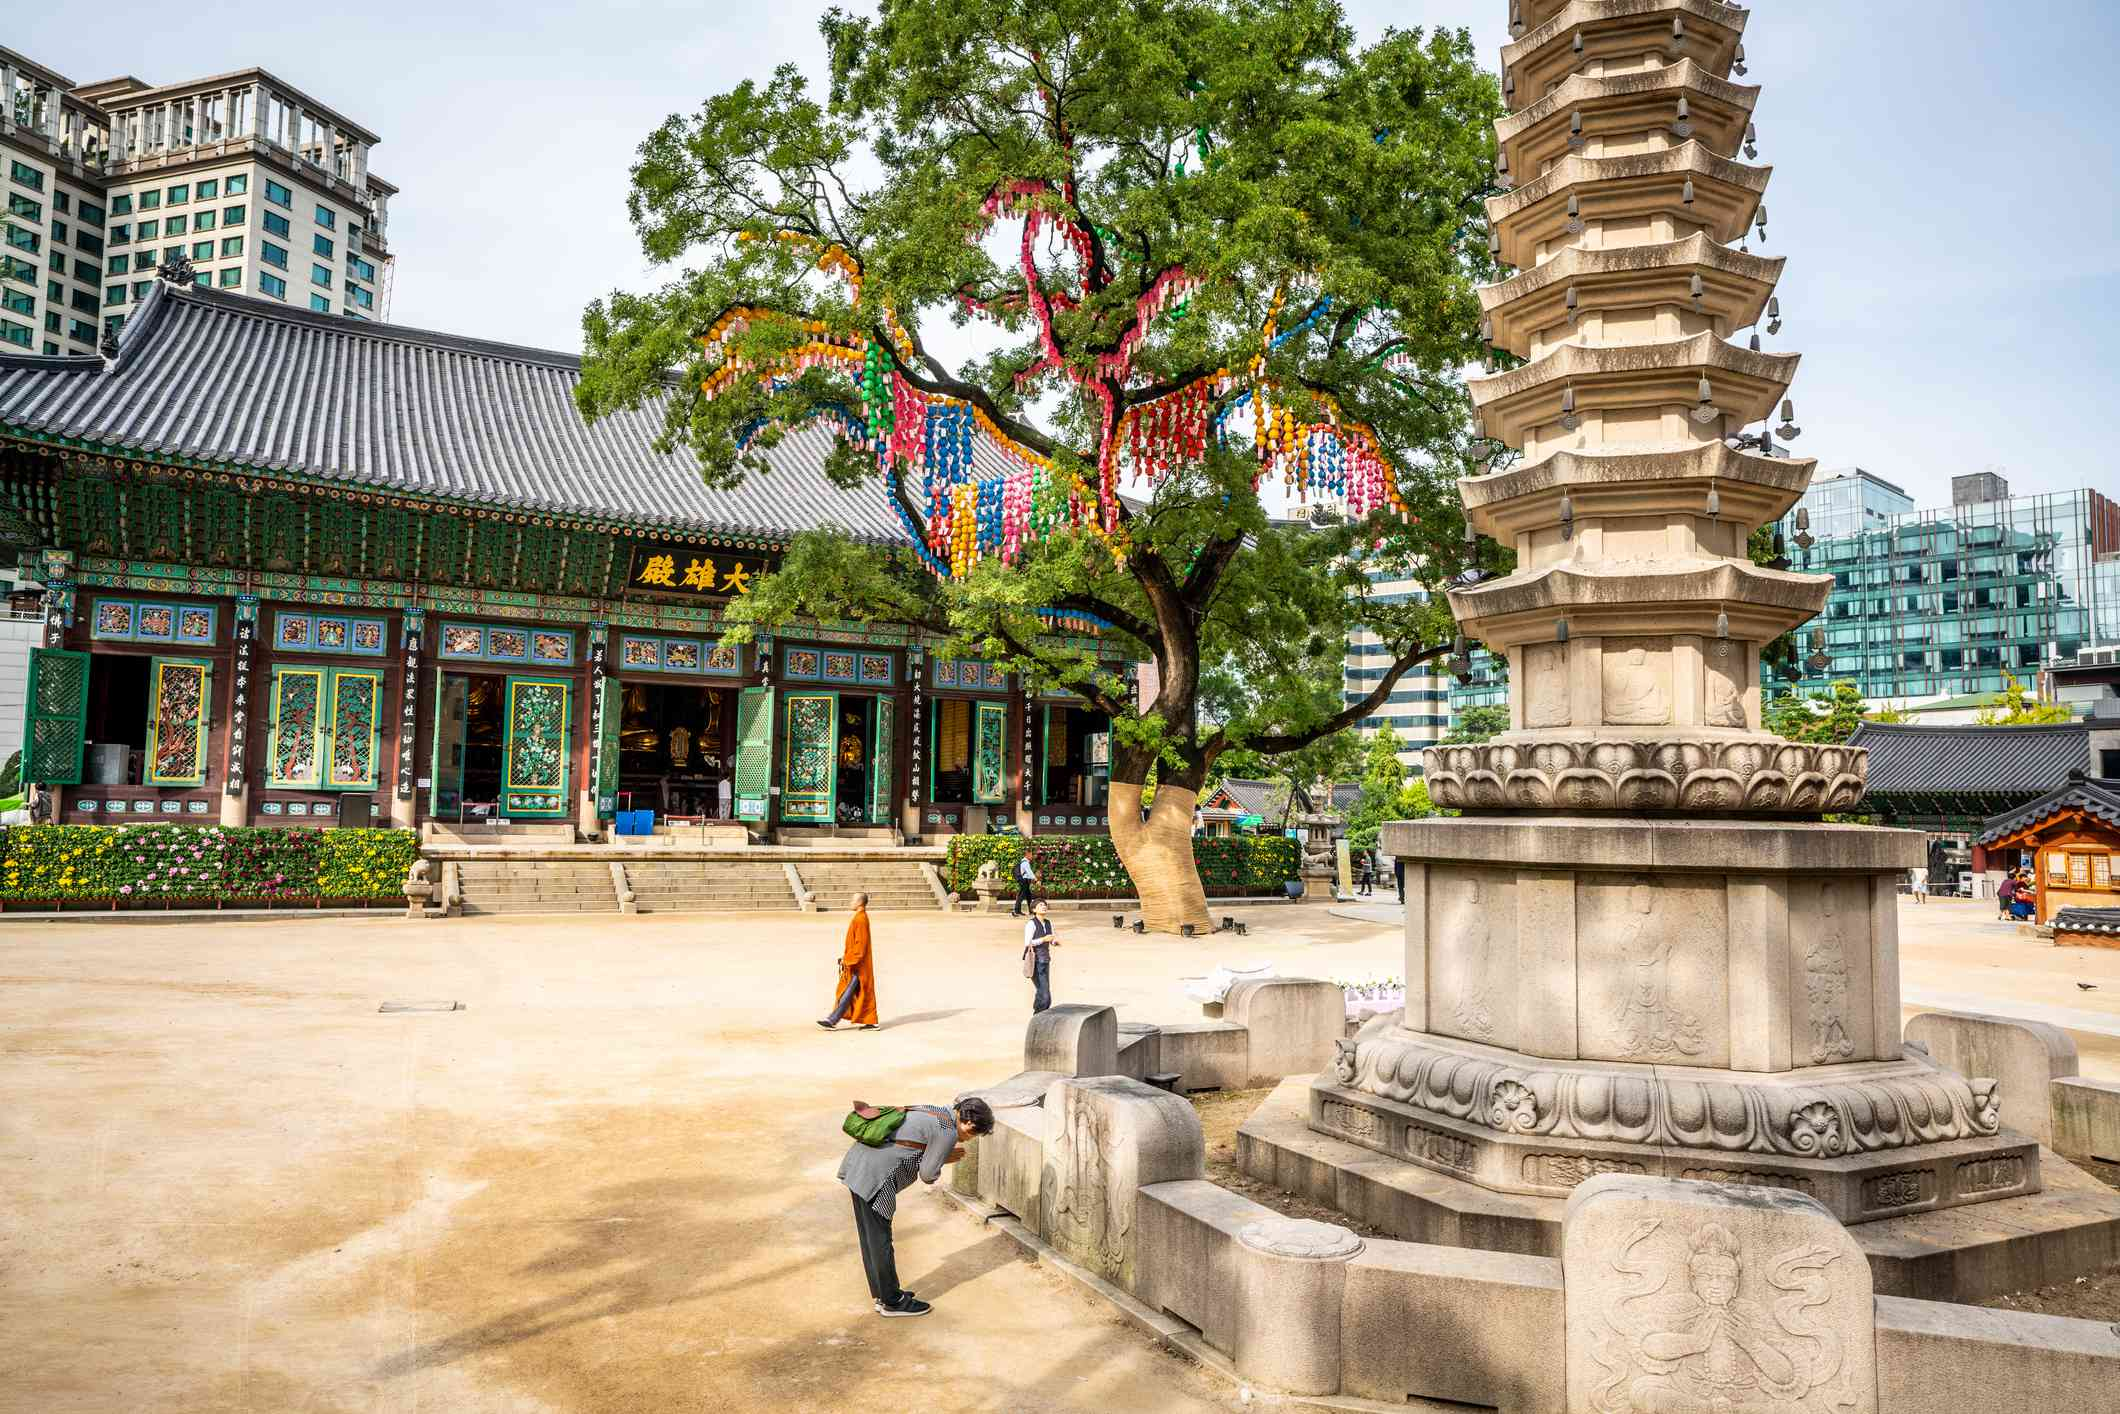 Jogyesa temple view with the Daeungjeon hall the pagoda tree and people praying in Seoul South Korea